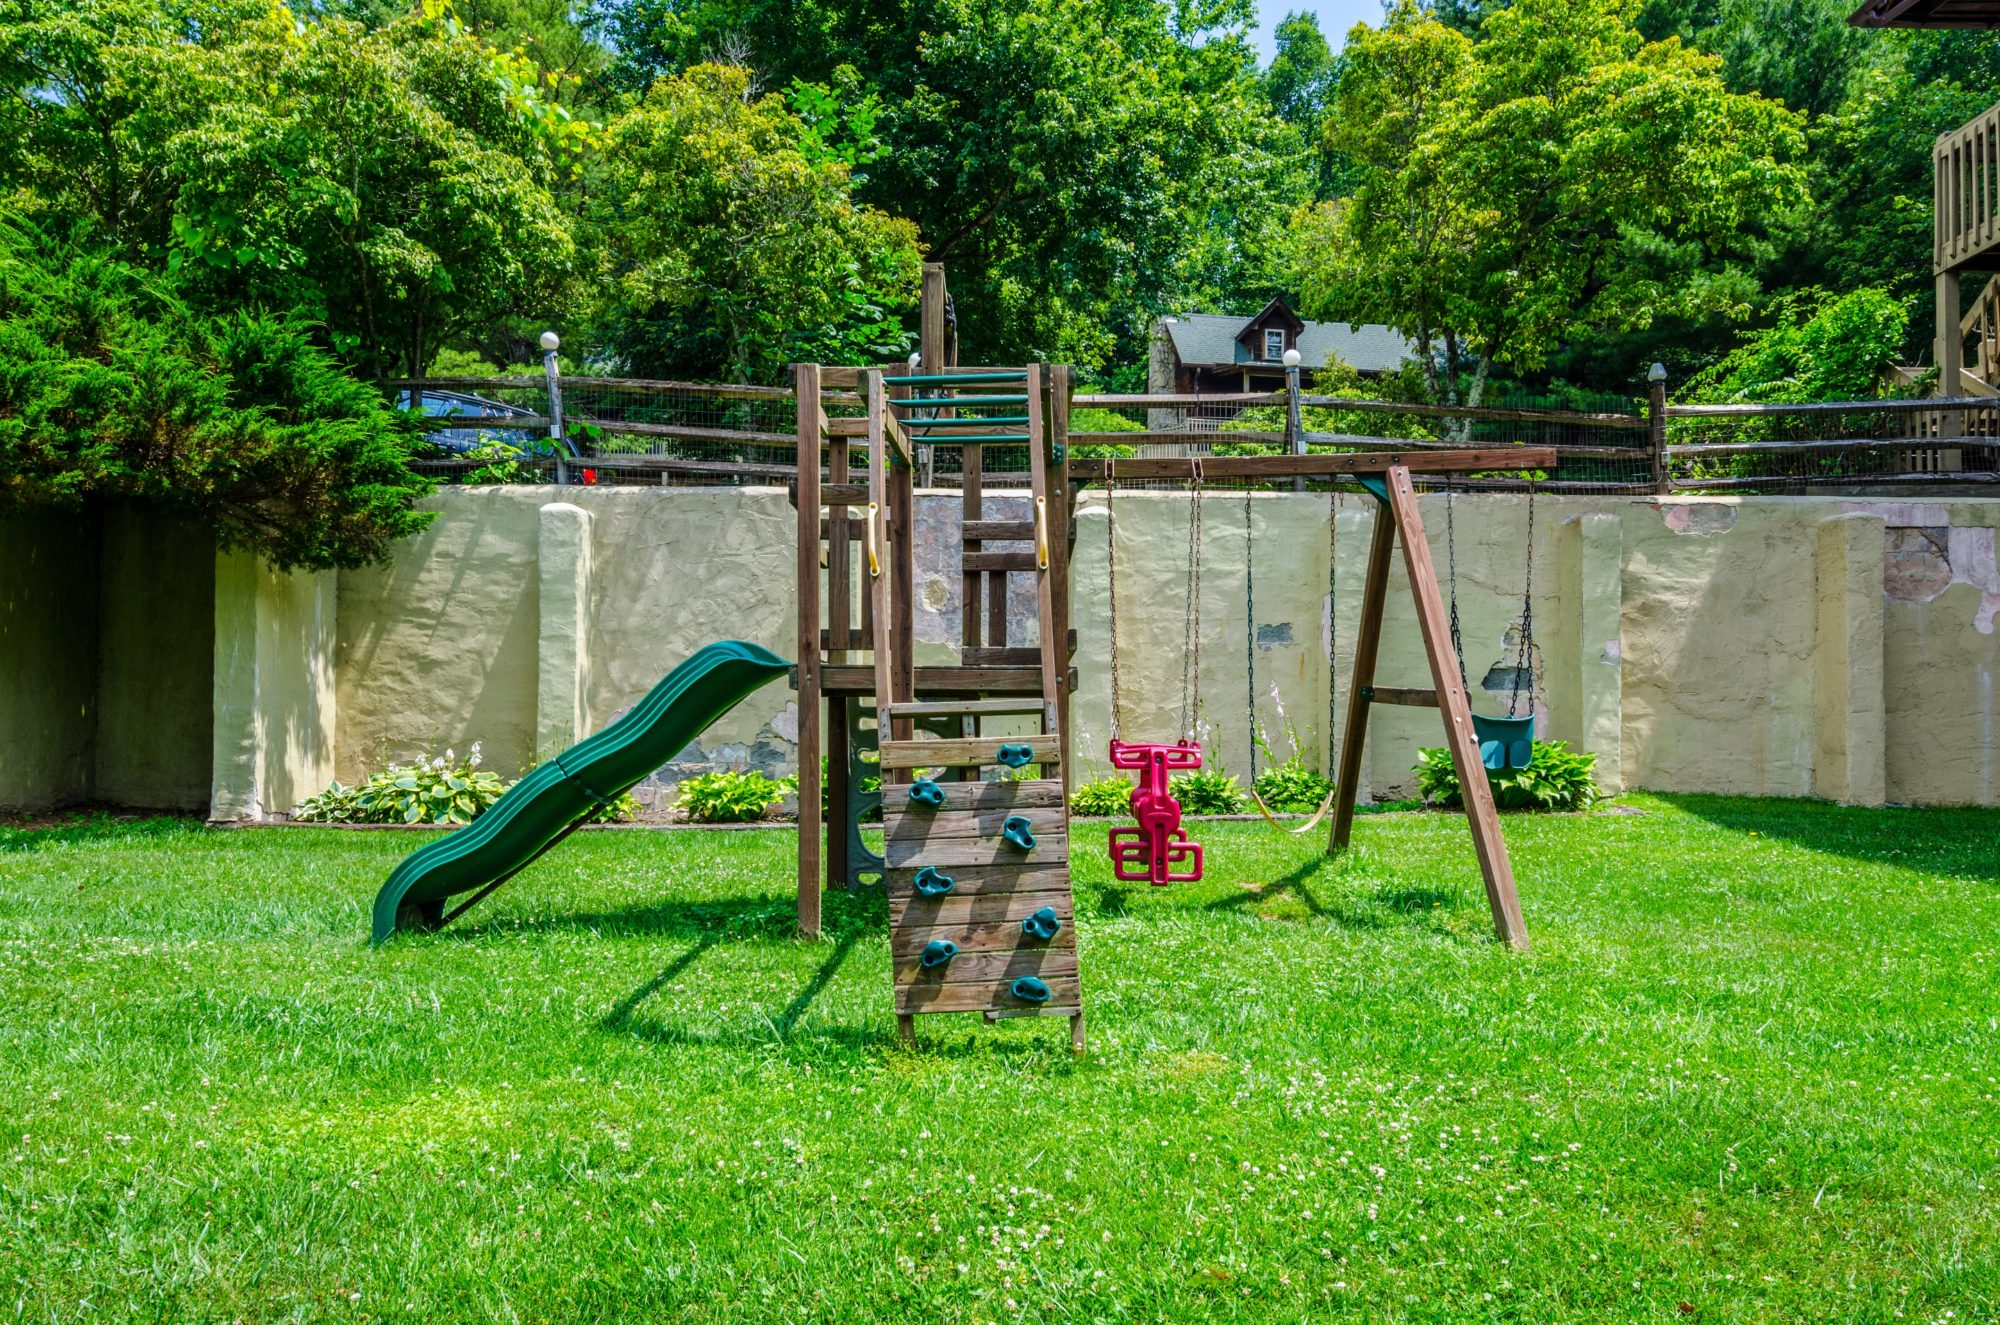 Children's activity set with slide, swings and climbing ramp set on grassy area with wall, wooden fencing and landscaping